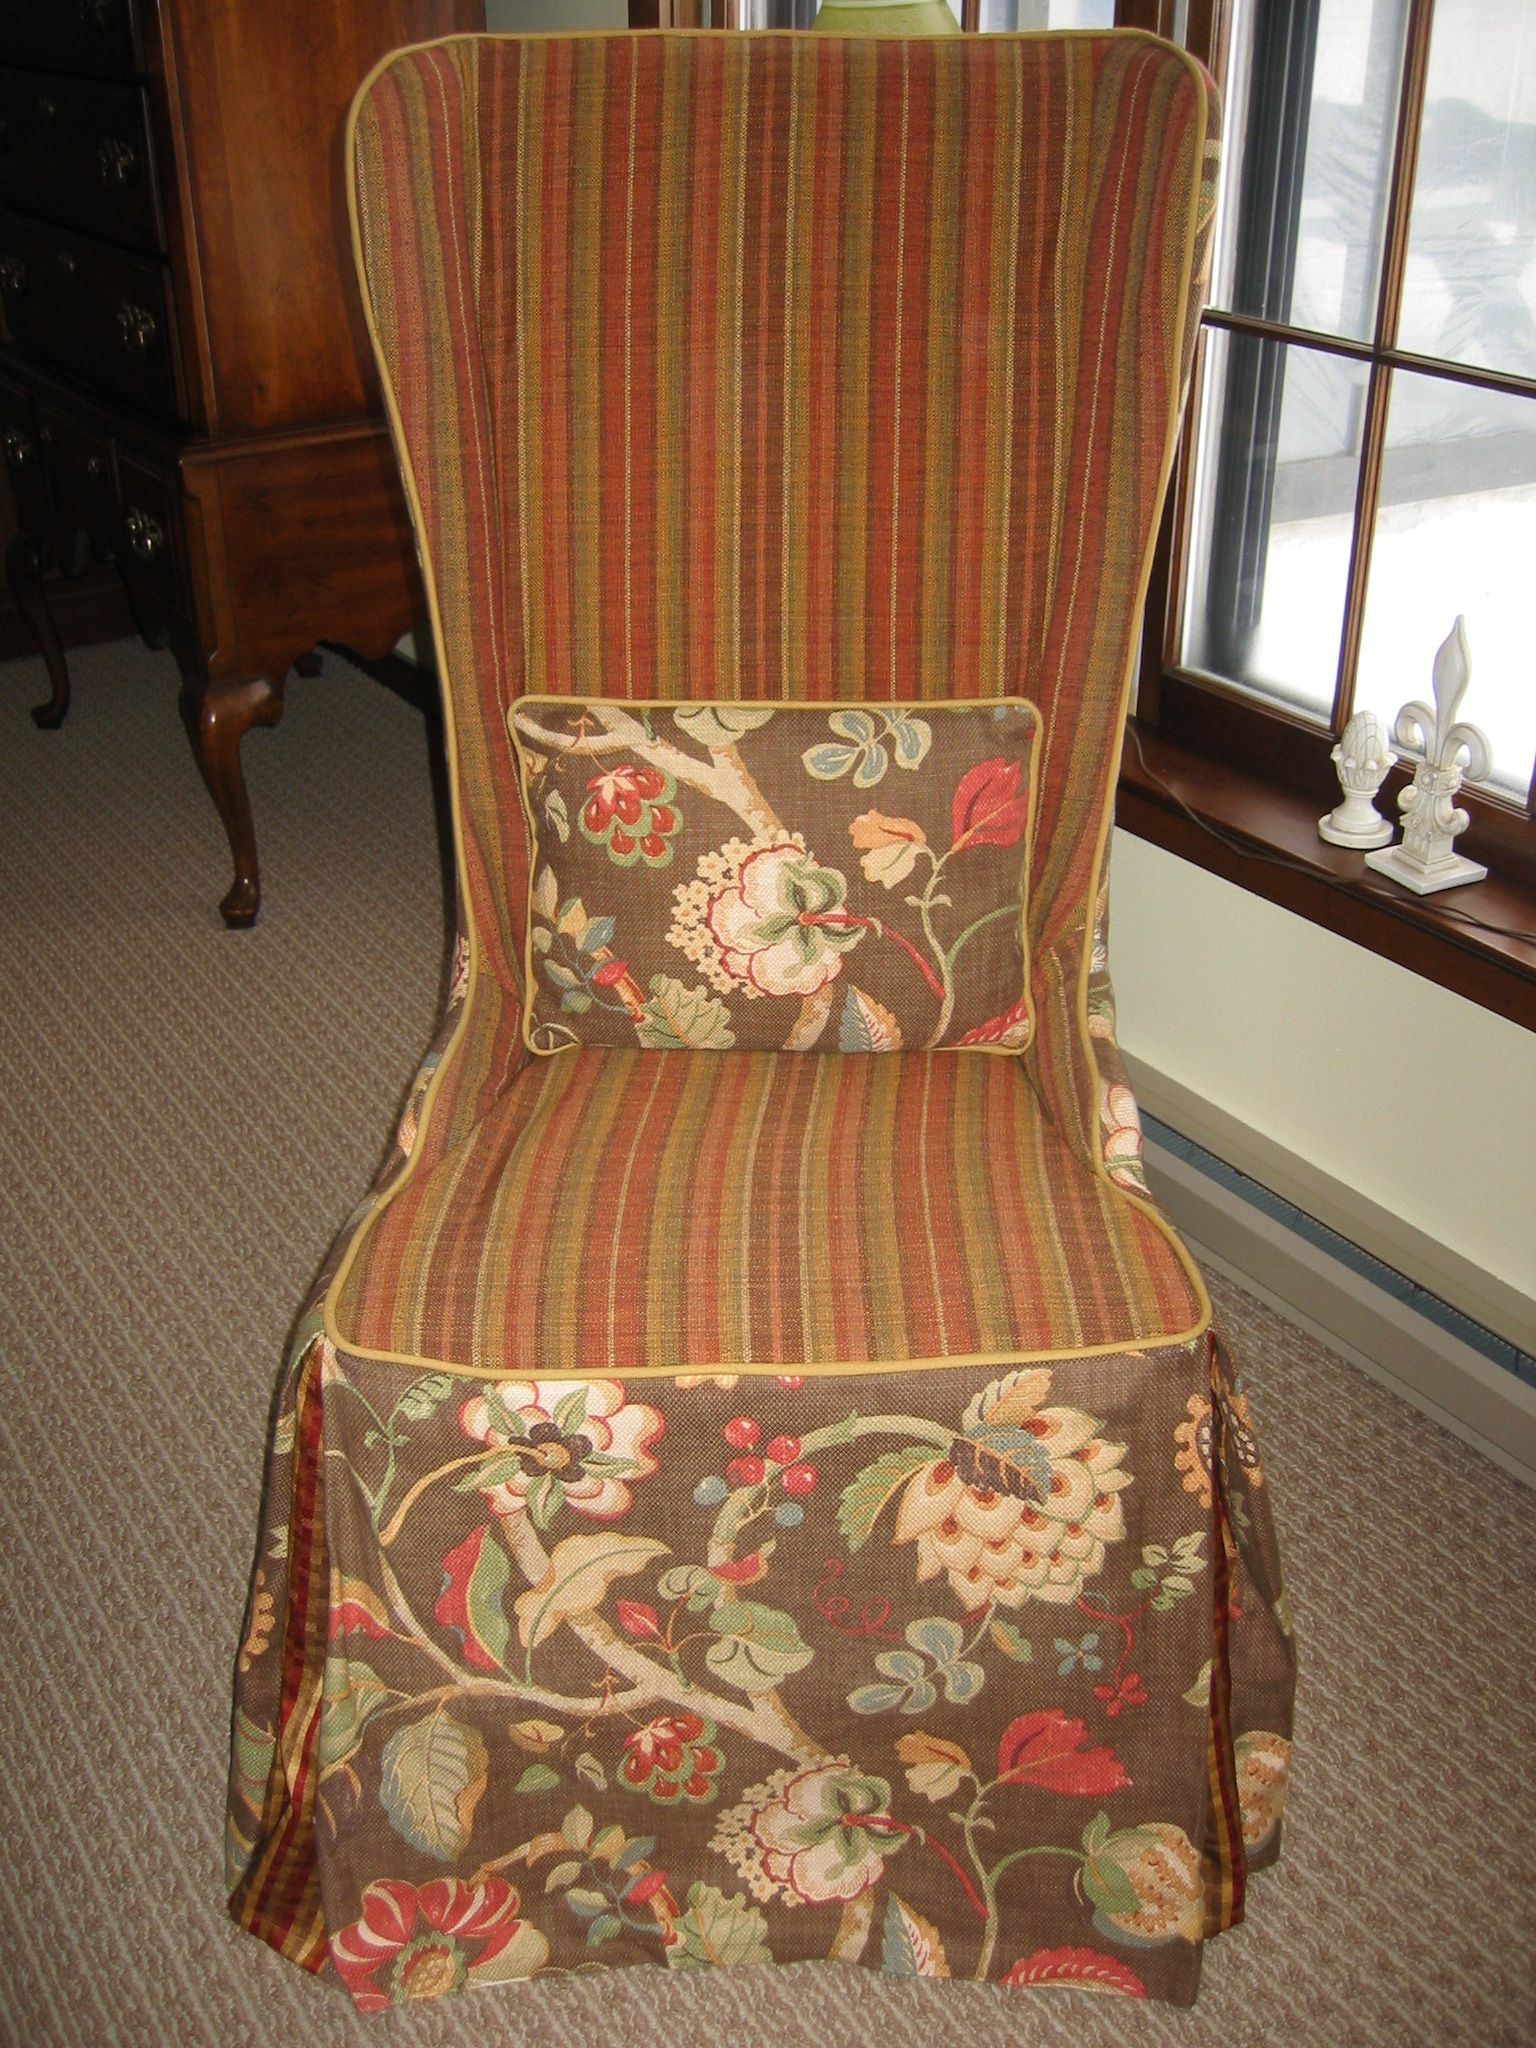 The front of my slipcovered desk chair. I bought this